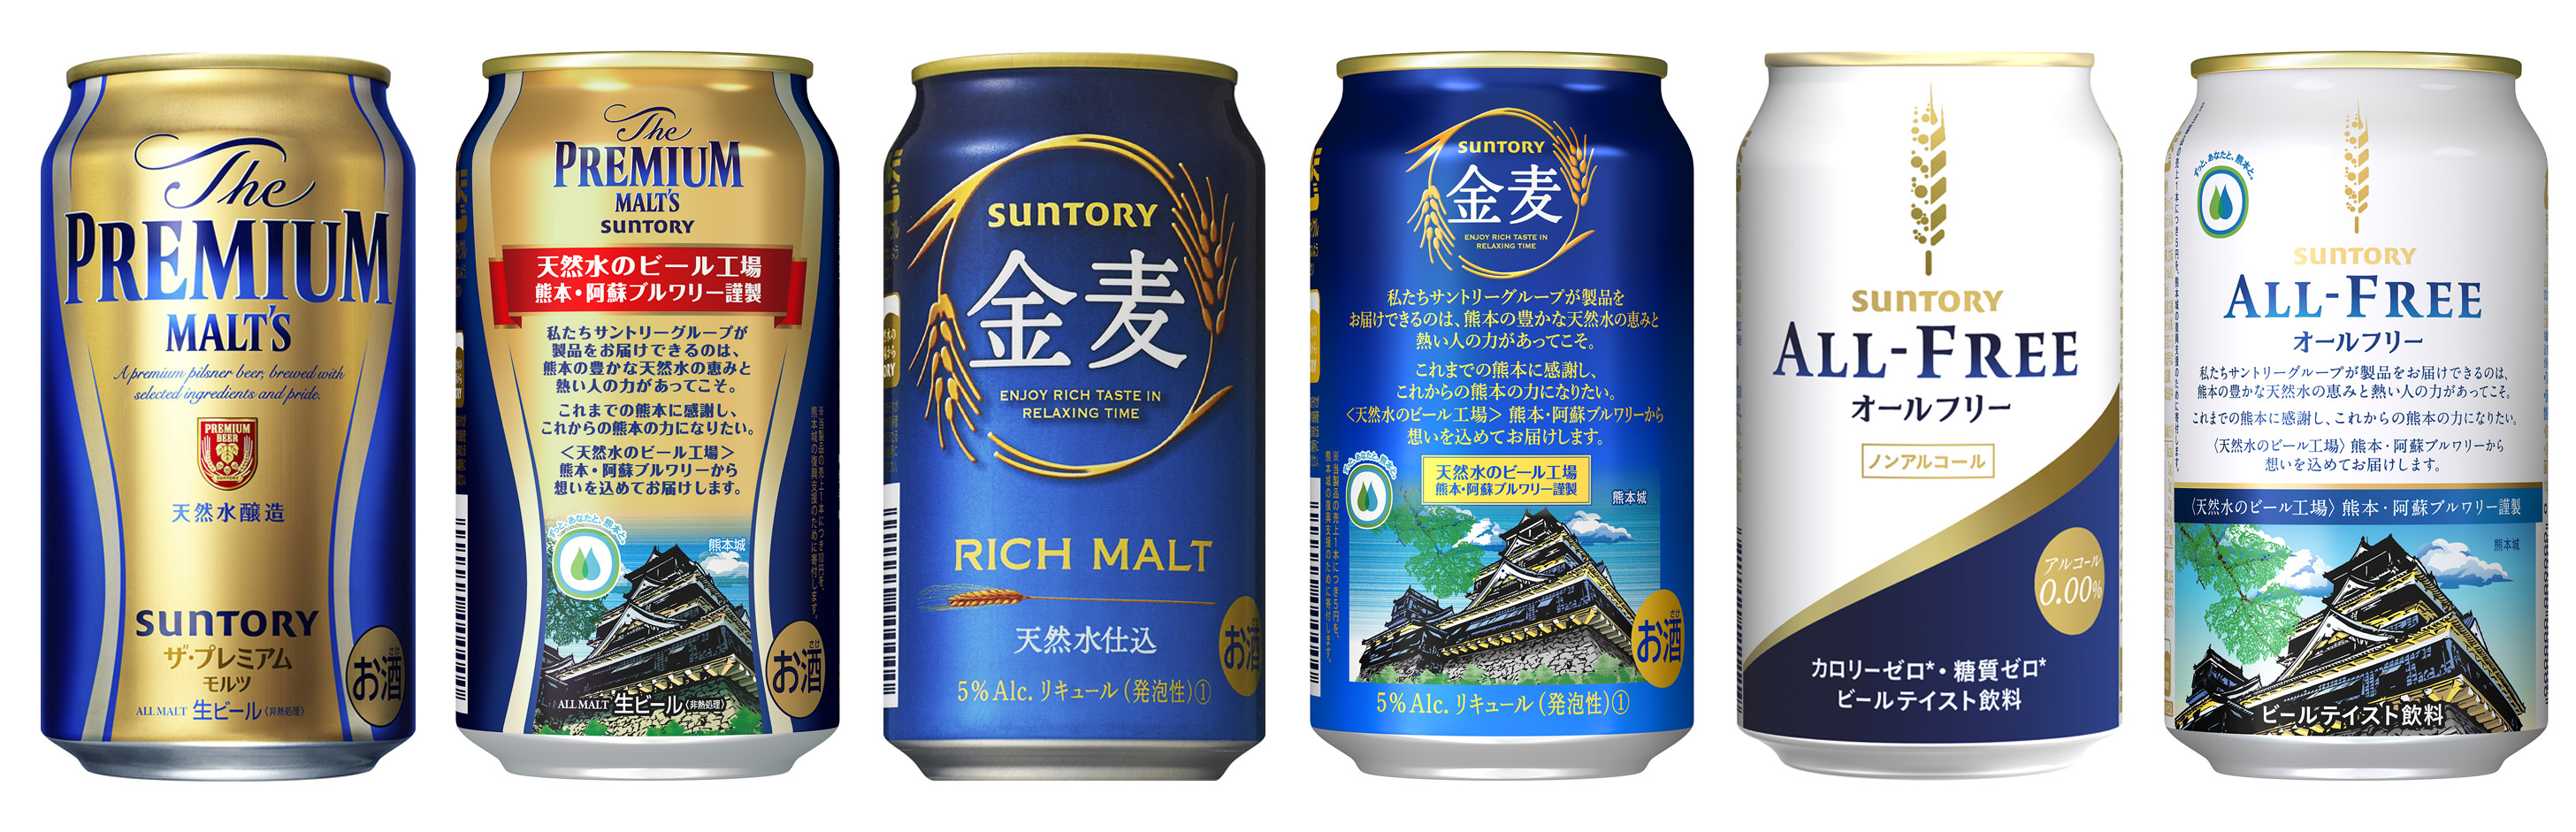 https://www.suntory.co.jp/news/article/mt_items/l_13146-1.jpg